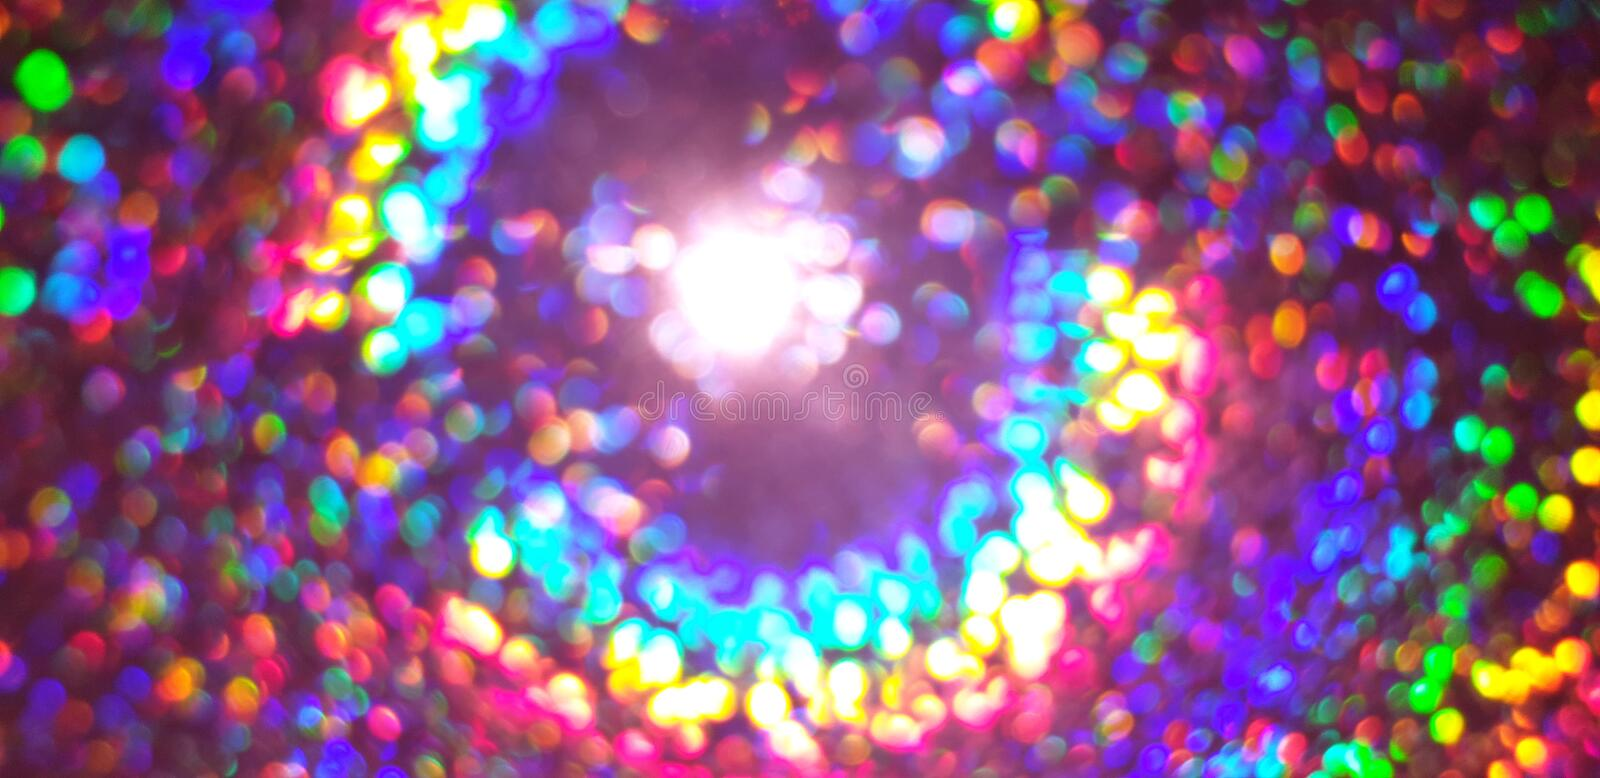 Colorful blurred lights background stock photography